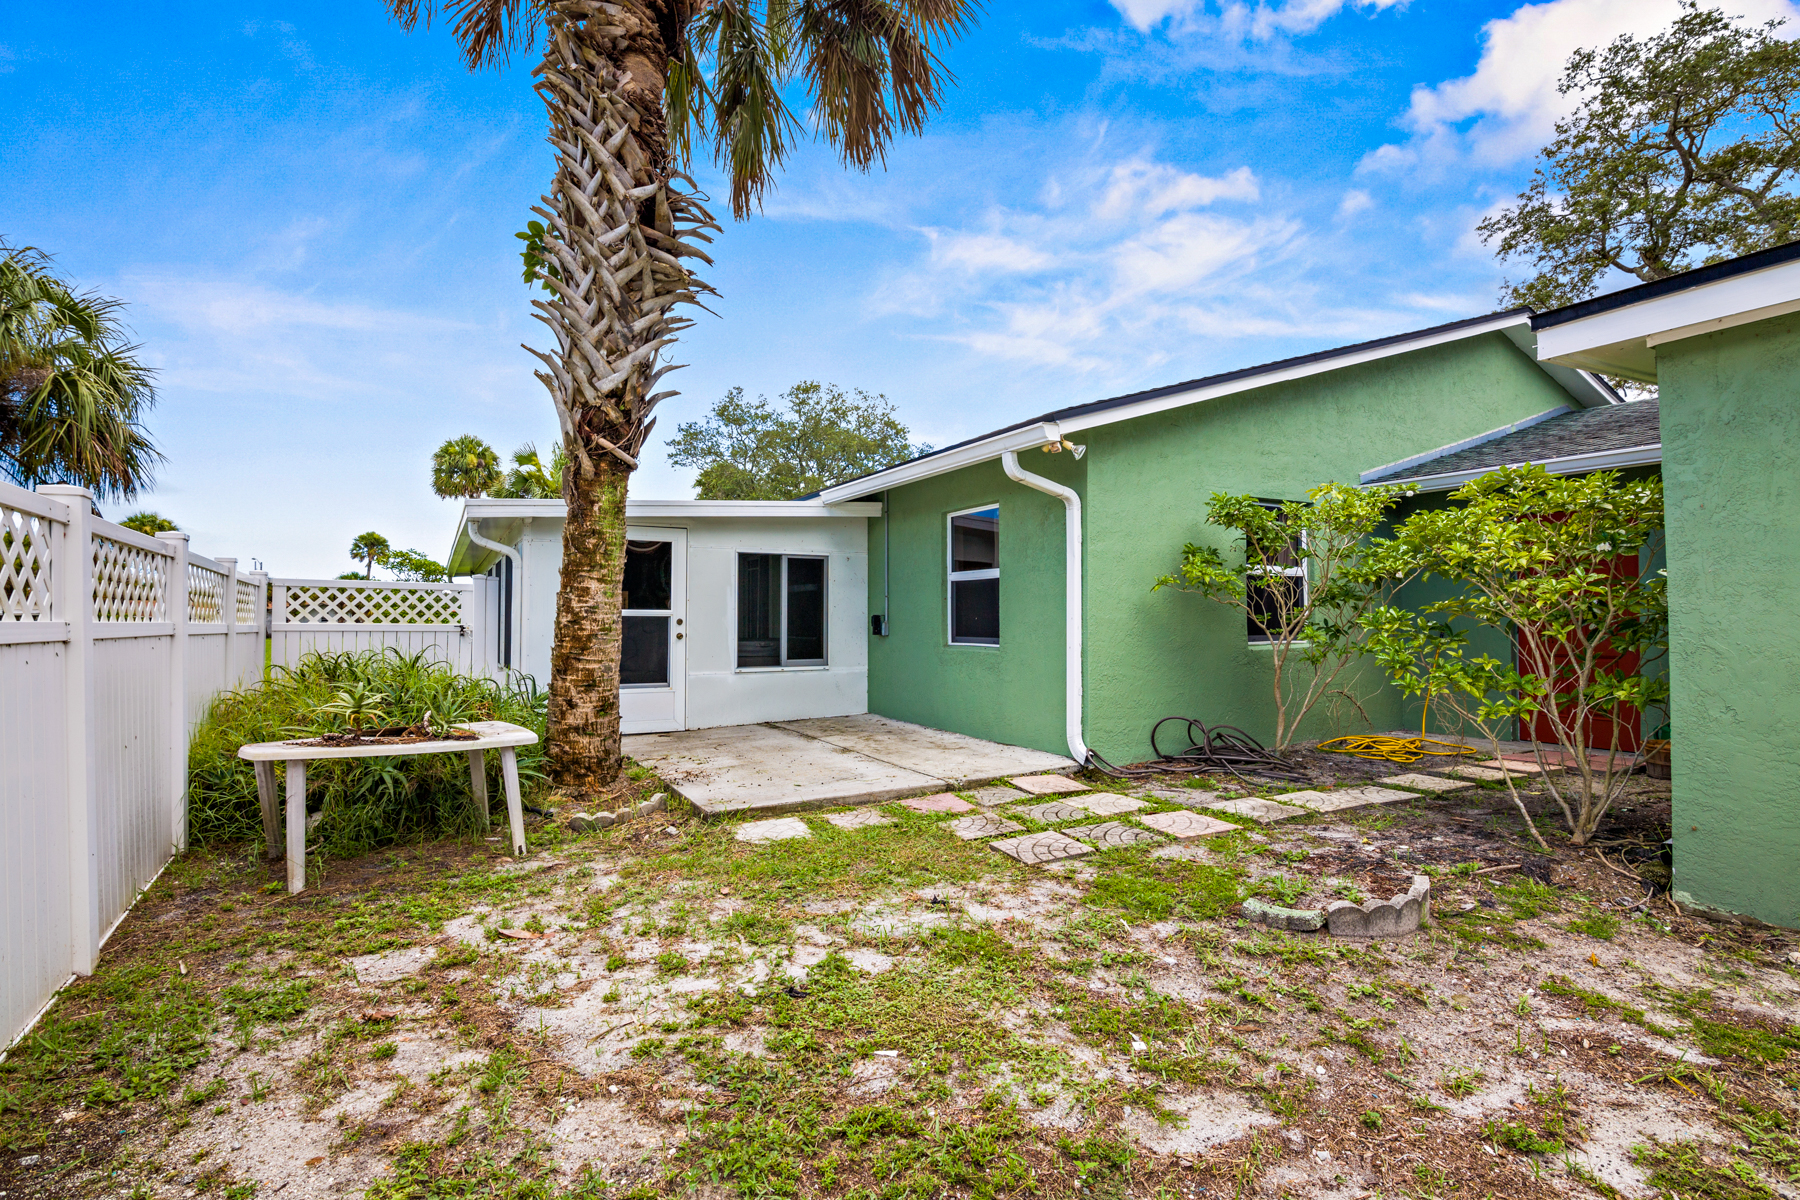 Additional photo for property listing at Clean, Solid Block Home in Well Established Neighborhood 1040 Mathers Street Melbourne, Florida 32935 United States